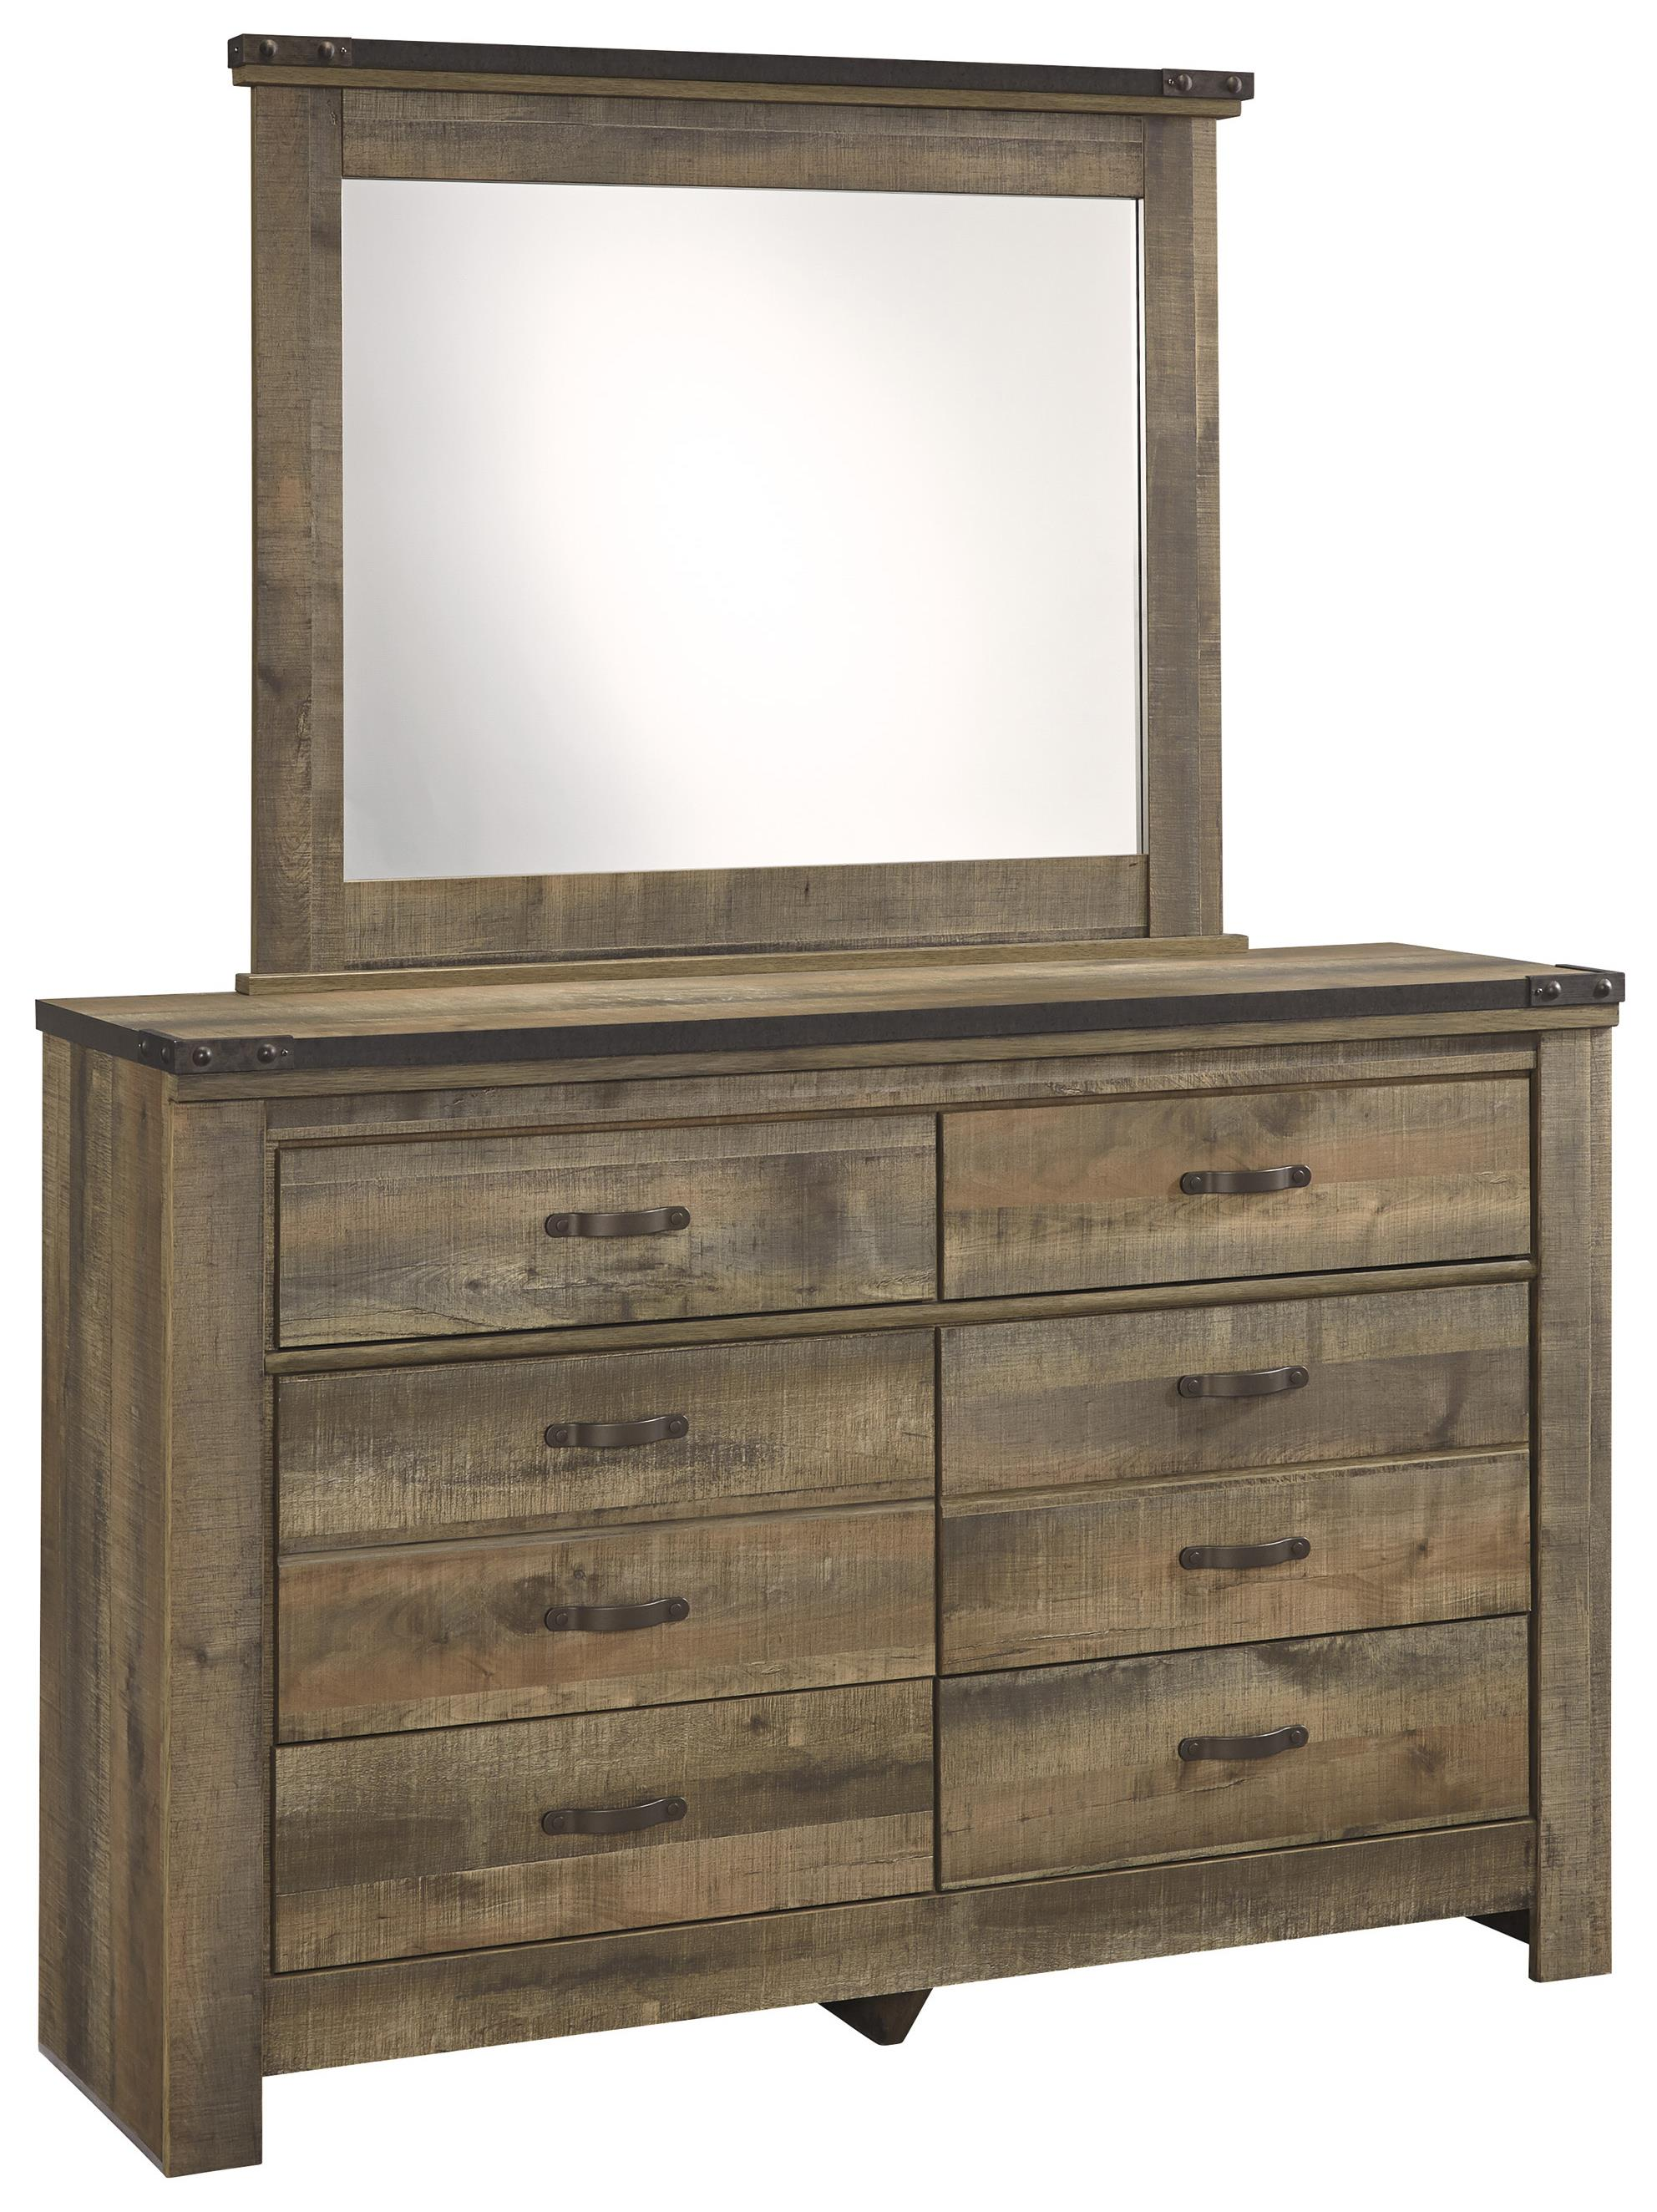 Signature Design by Ashley Trinell Youth Dresser & Bedroom Mirror - Item Number: B446-21+26